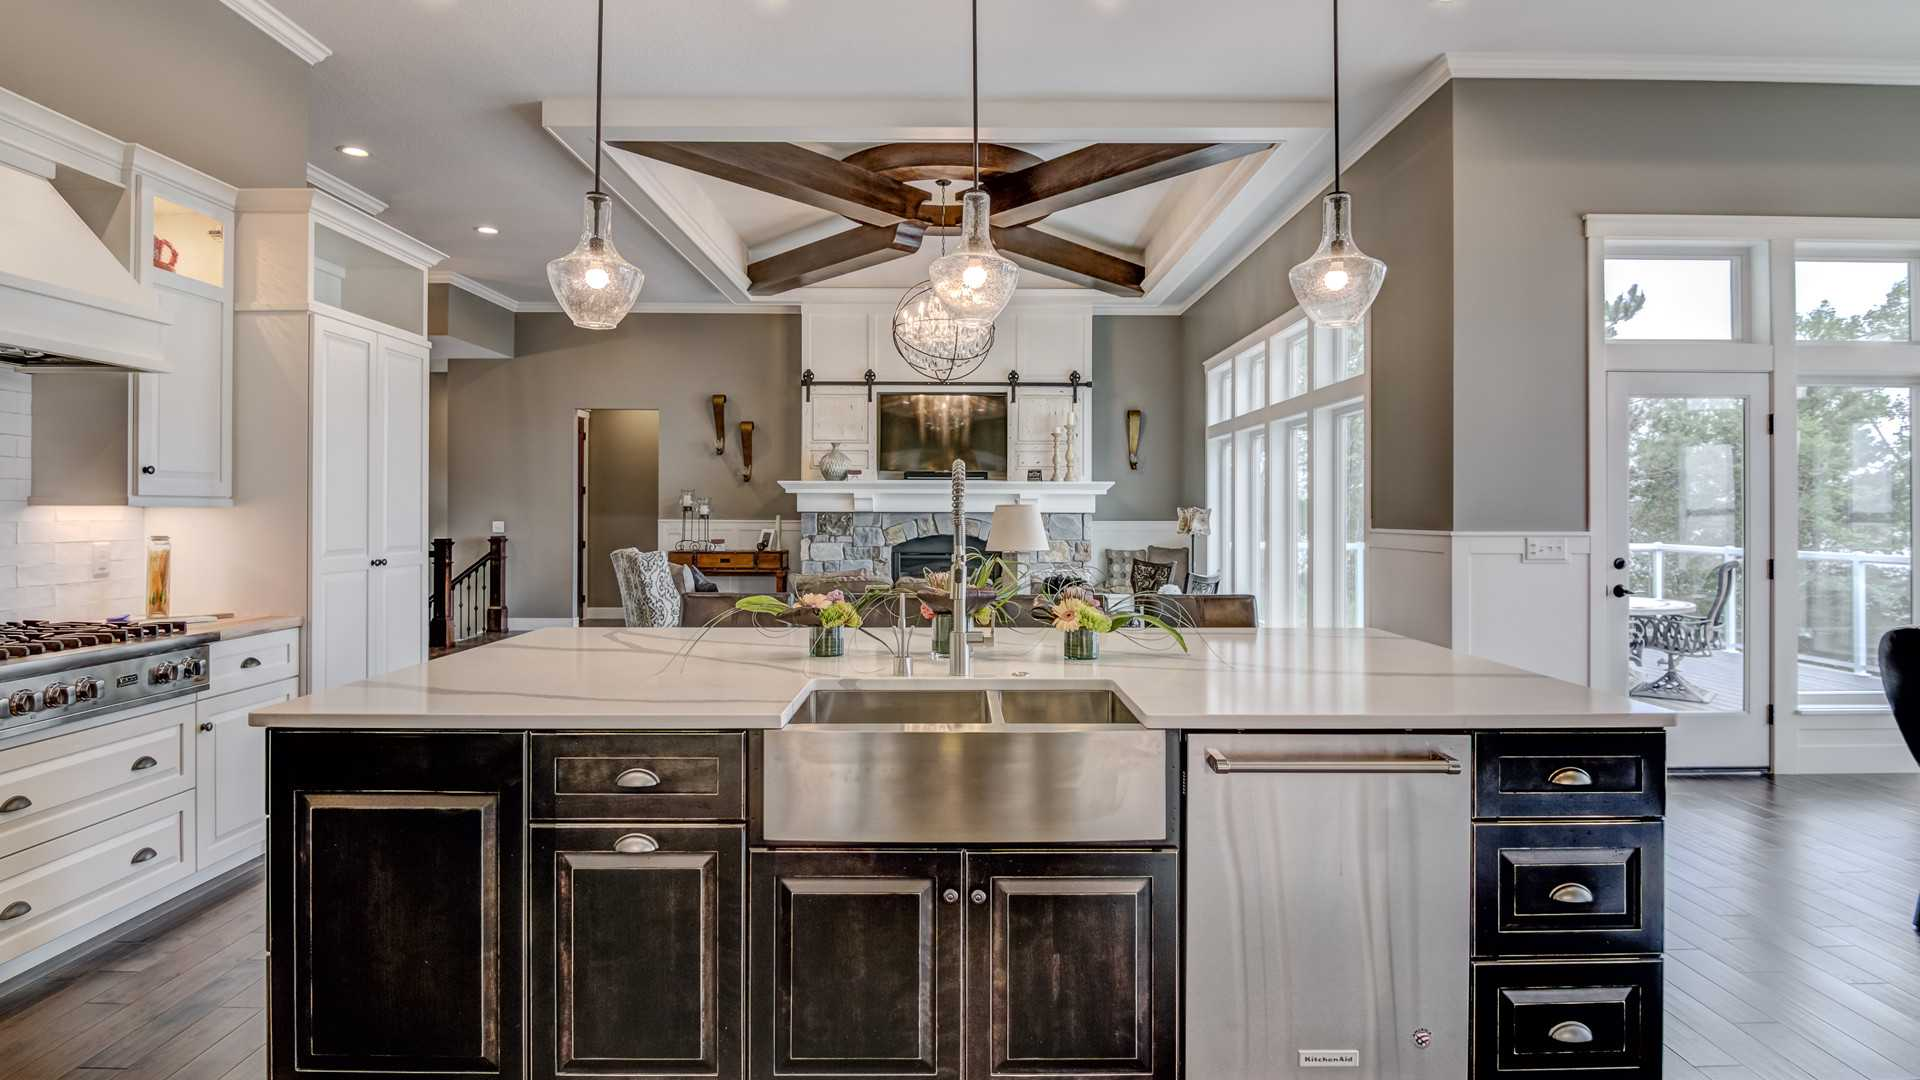 5 things you don't know about quartz countertops